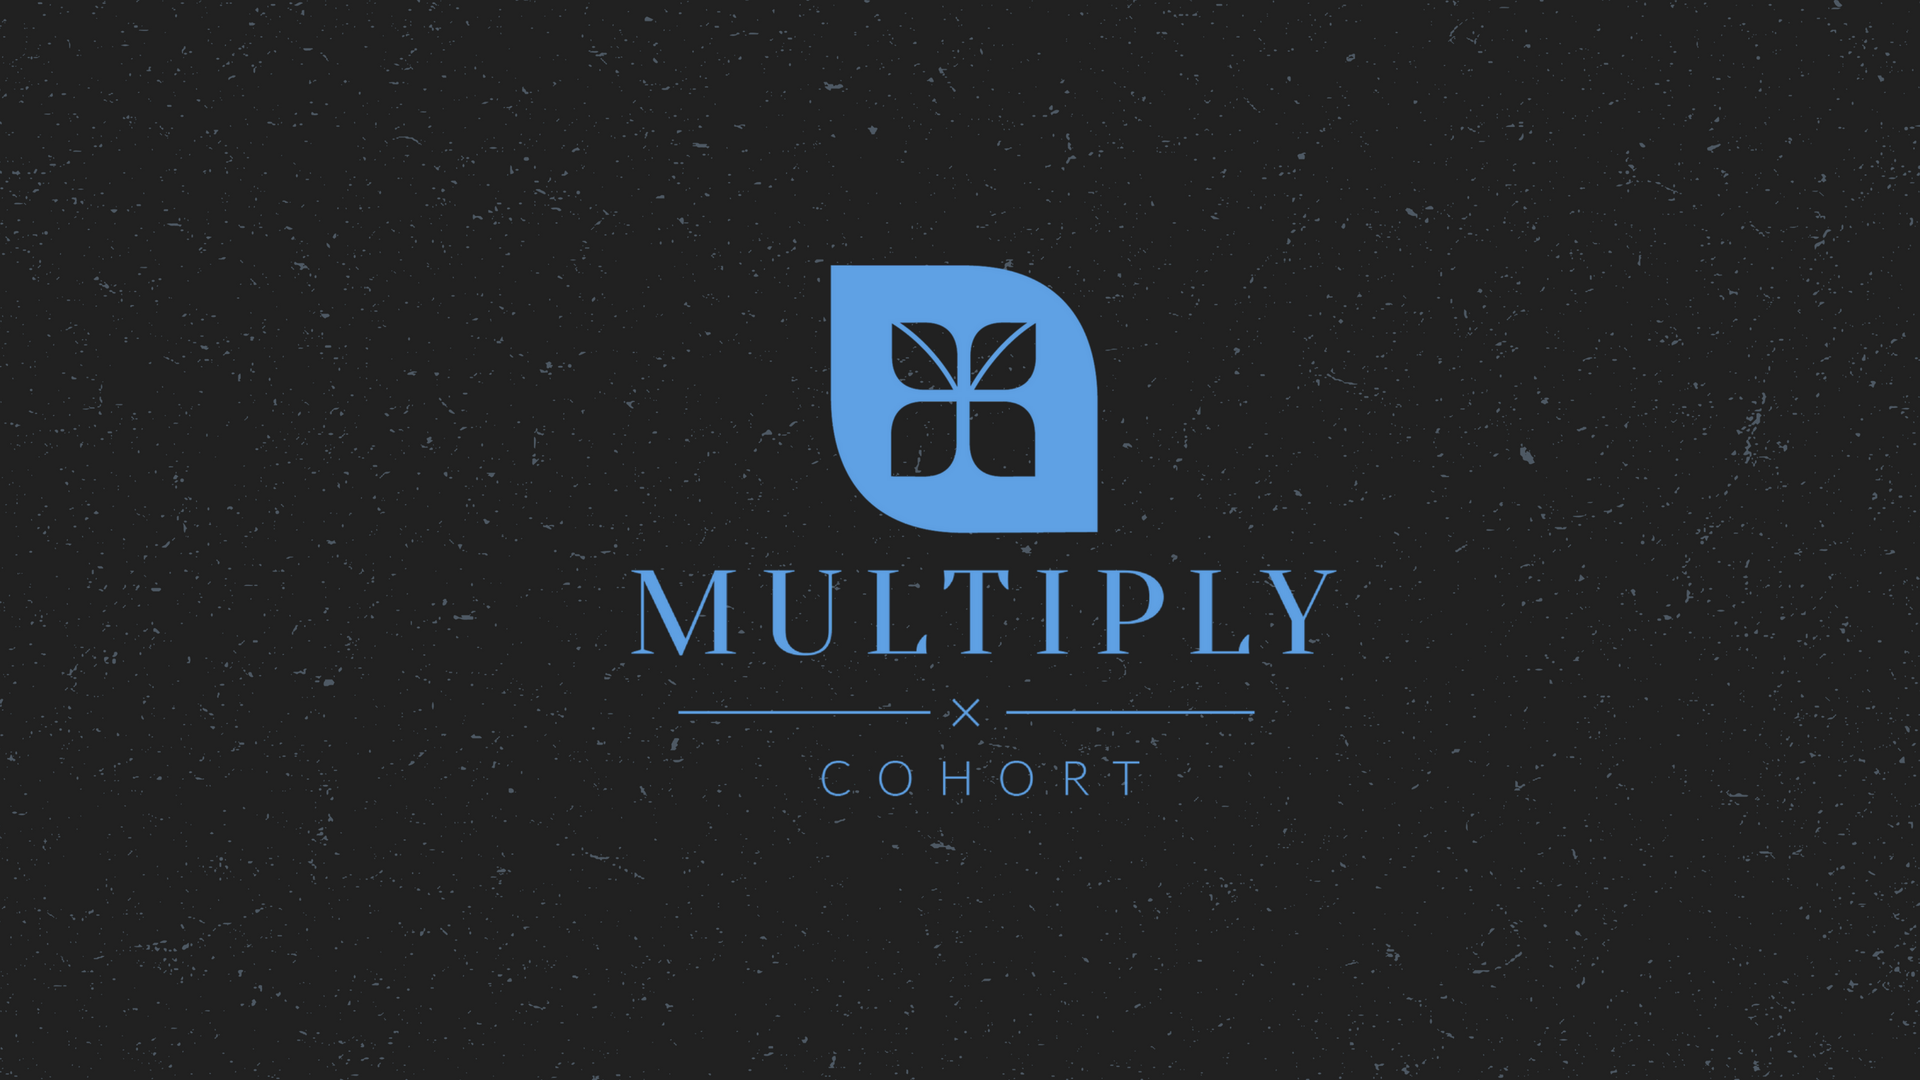 The Multiply Cohort has finished three sessions since it started in August 2017, with 15 churches working together through the process with the goal of building new systems and multiplying their church.